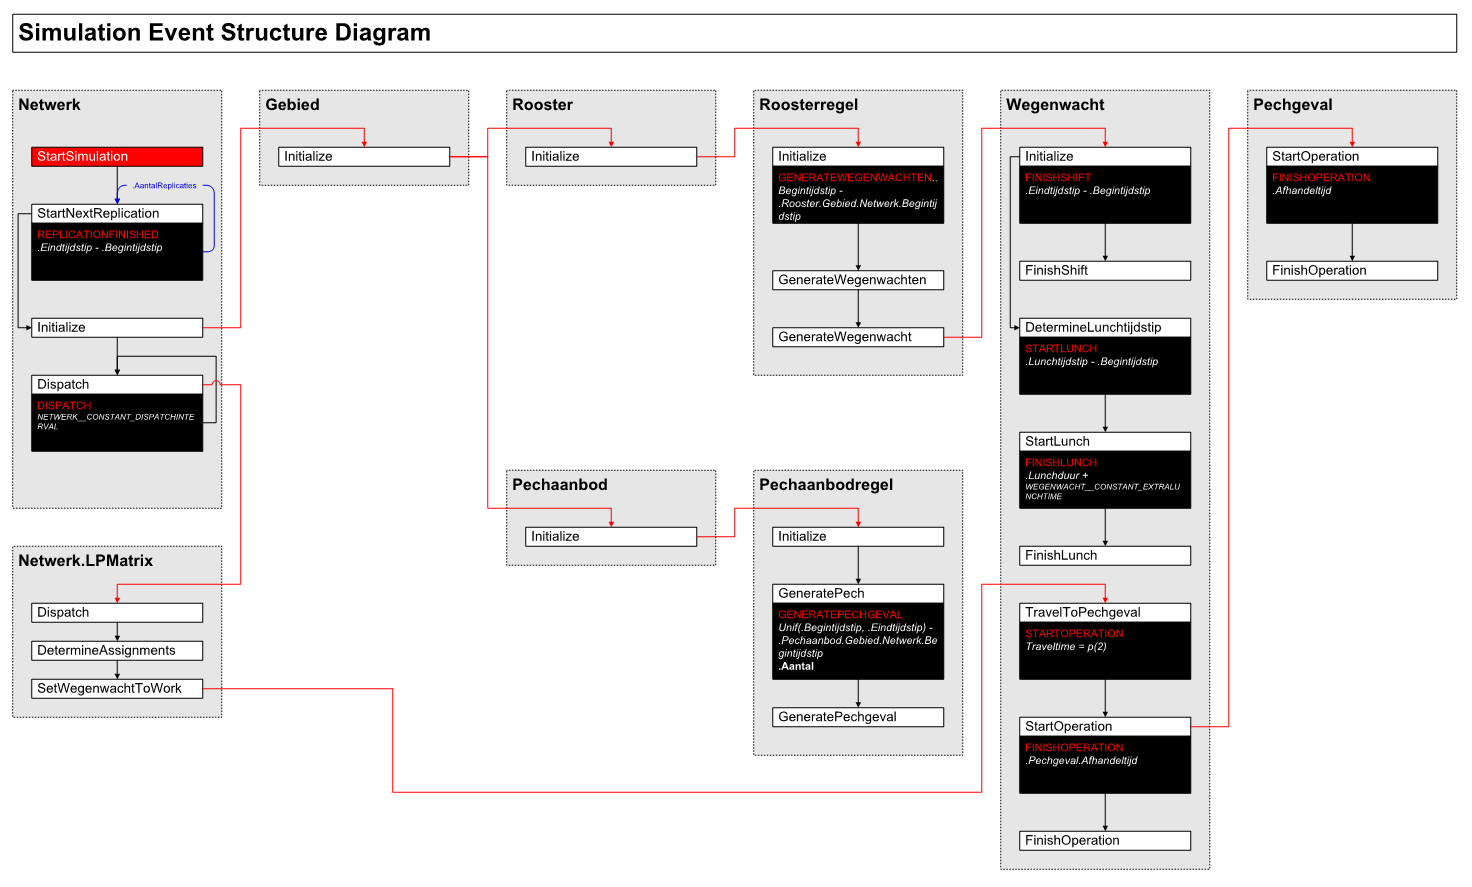 ANWB - Technical documentation of discrete event structure / workflow - © Incontrol Simulation Solutions